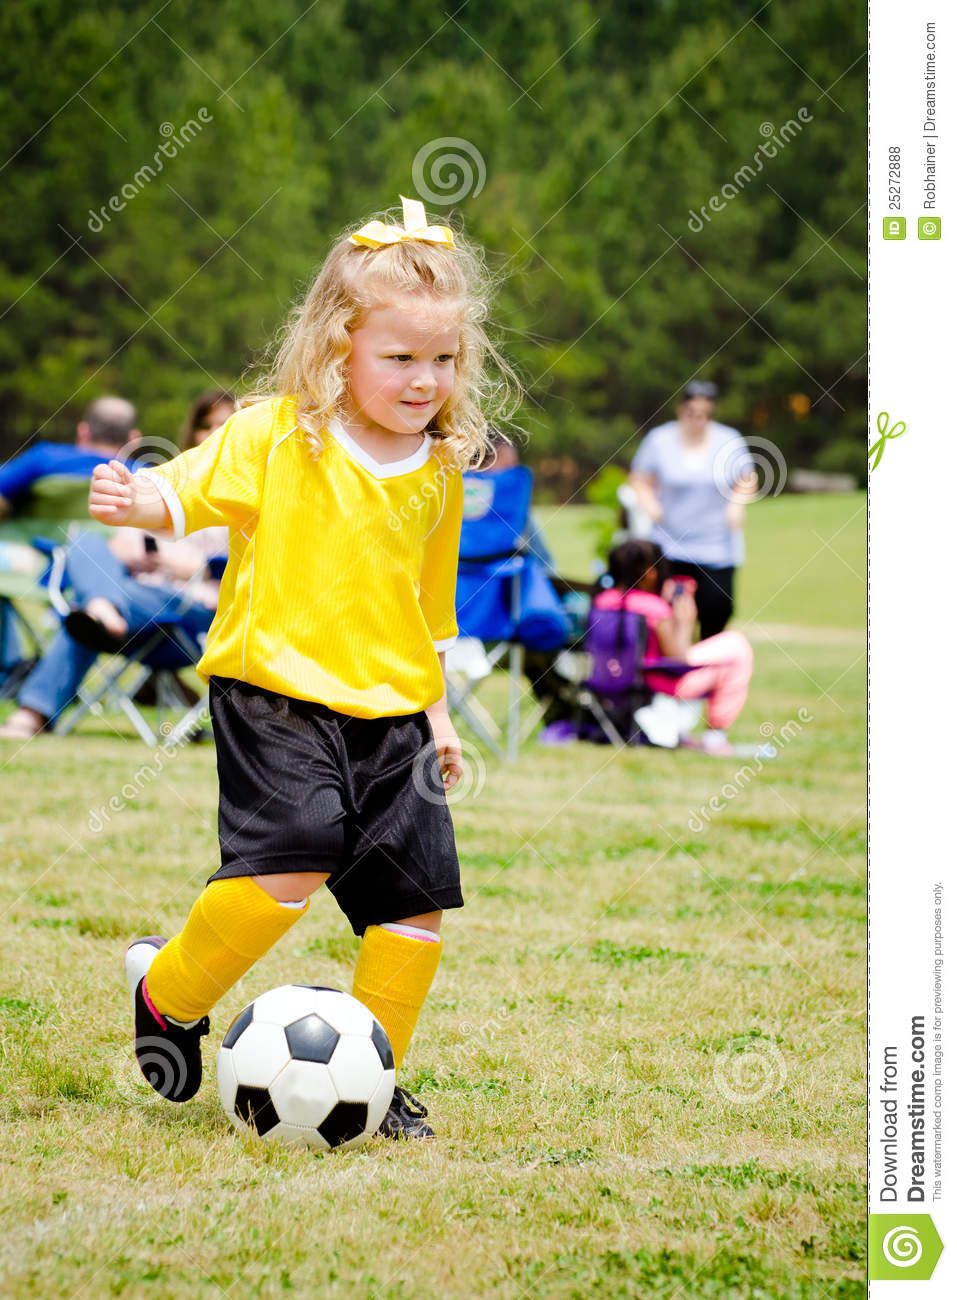 5f4720498 Cute young girl in uniform playing in organized youth league soccer game